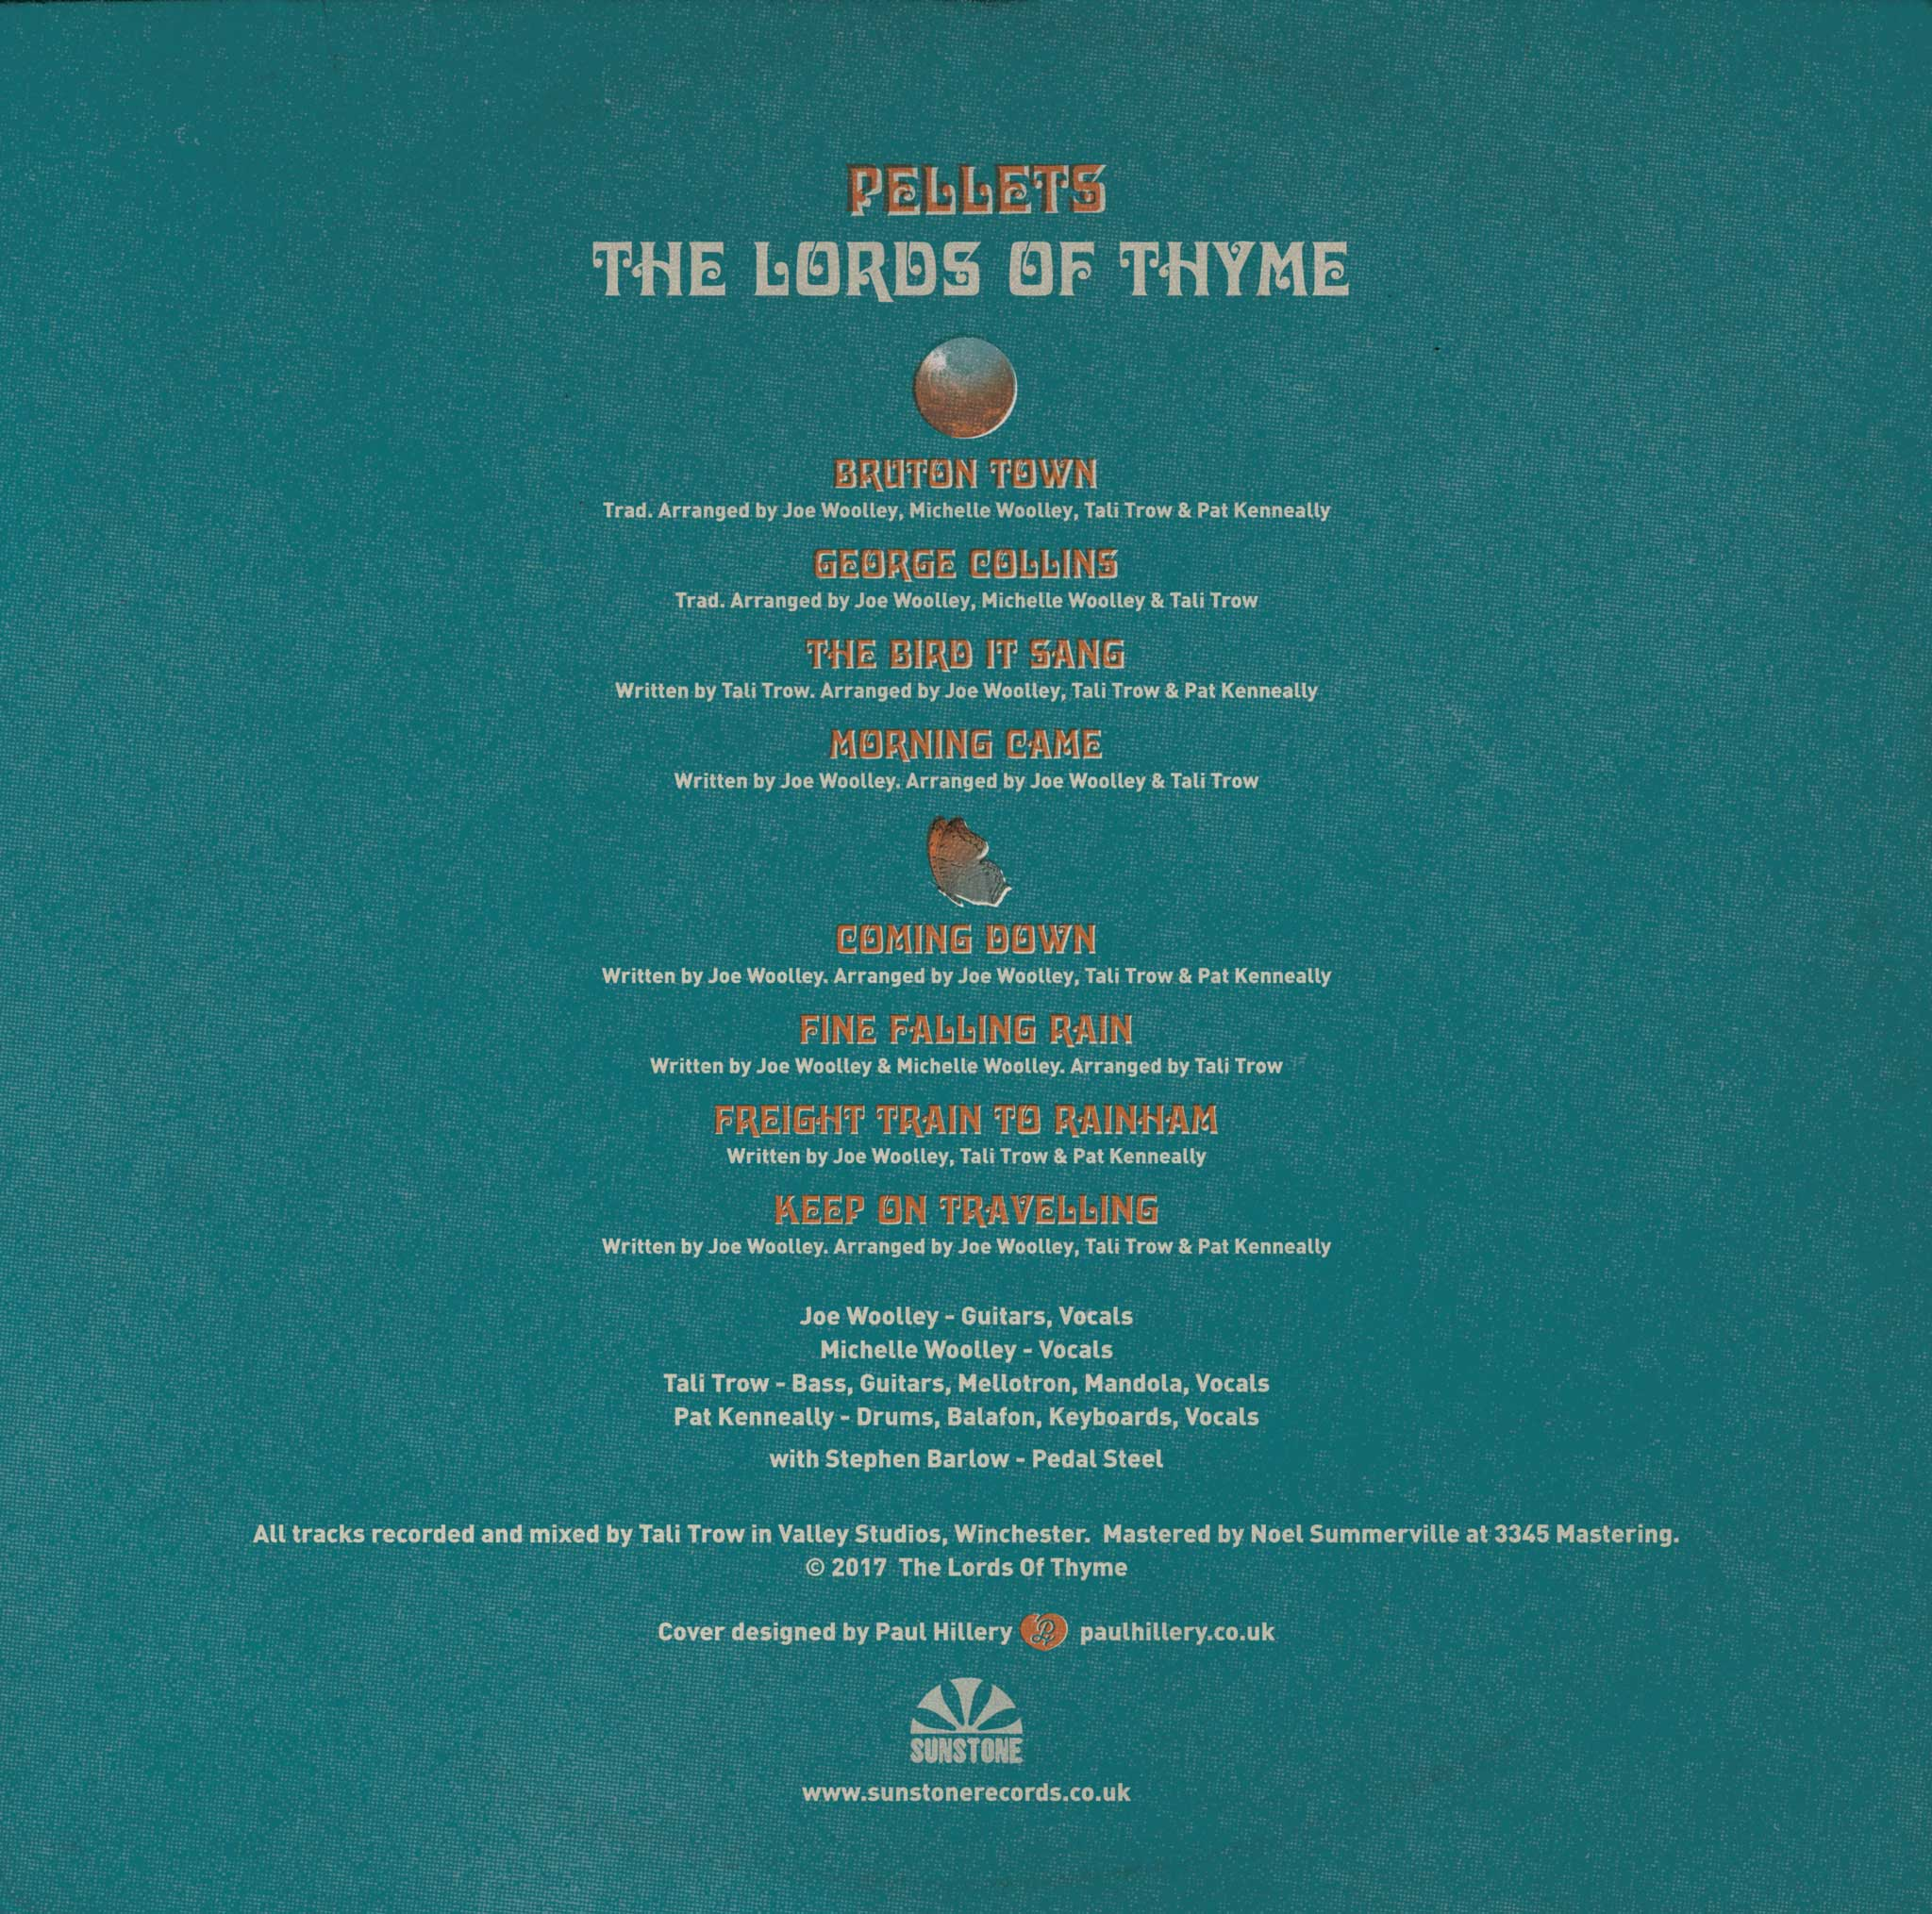 Paul Hillery designed cover to The Lords Of Thyme album Pellets